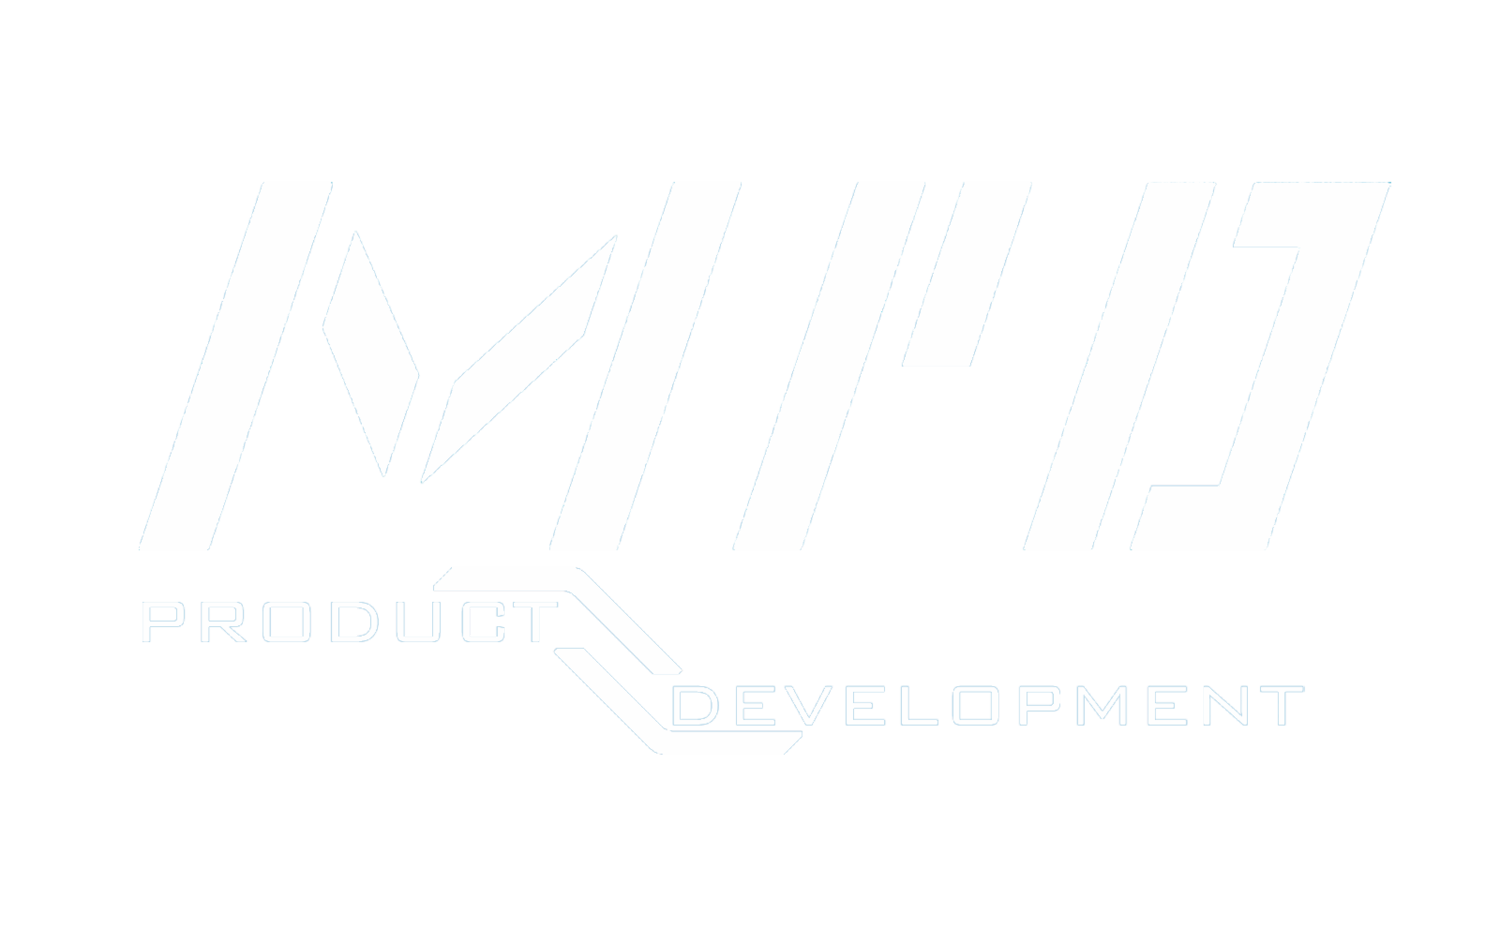 MPD PRODUCT DEVELOPMENT